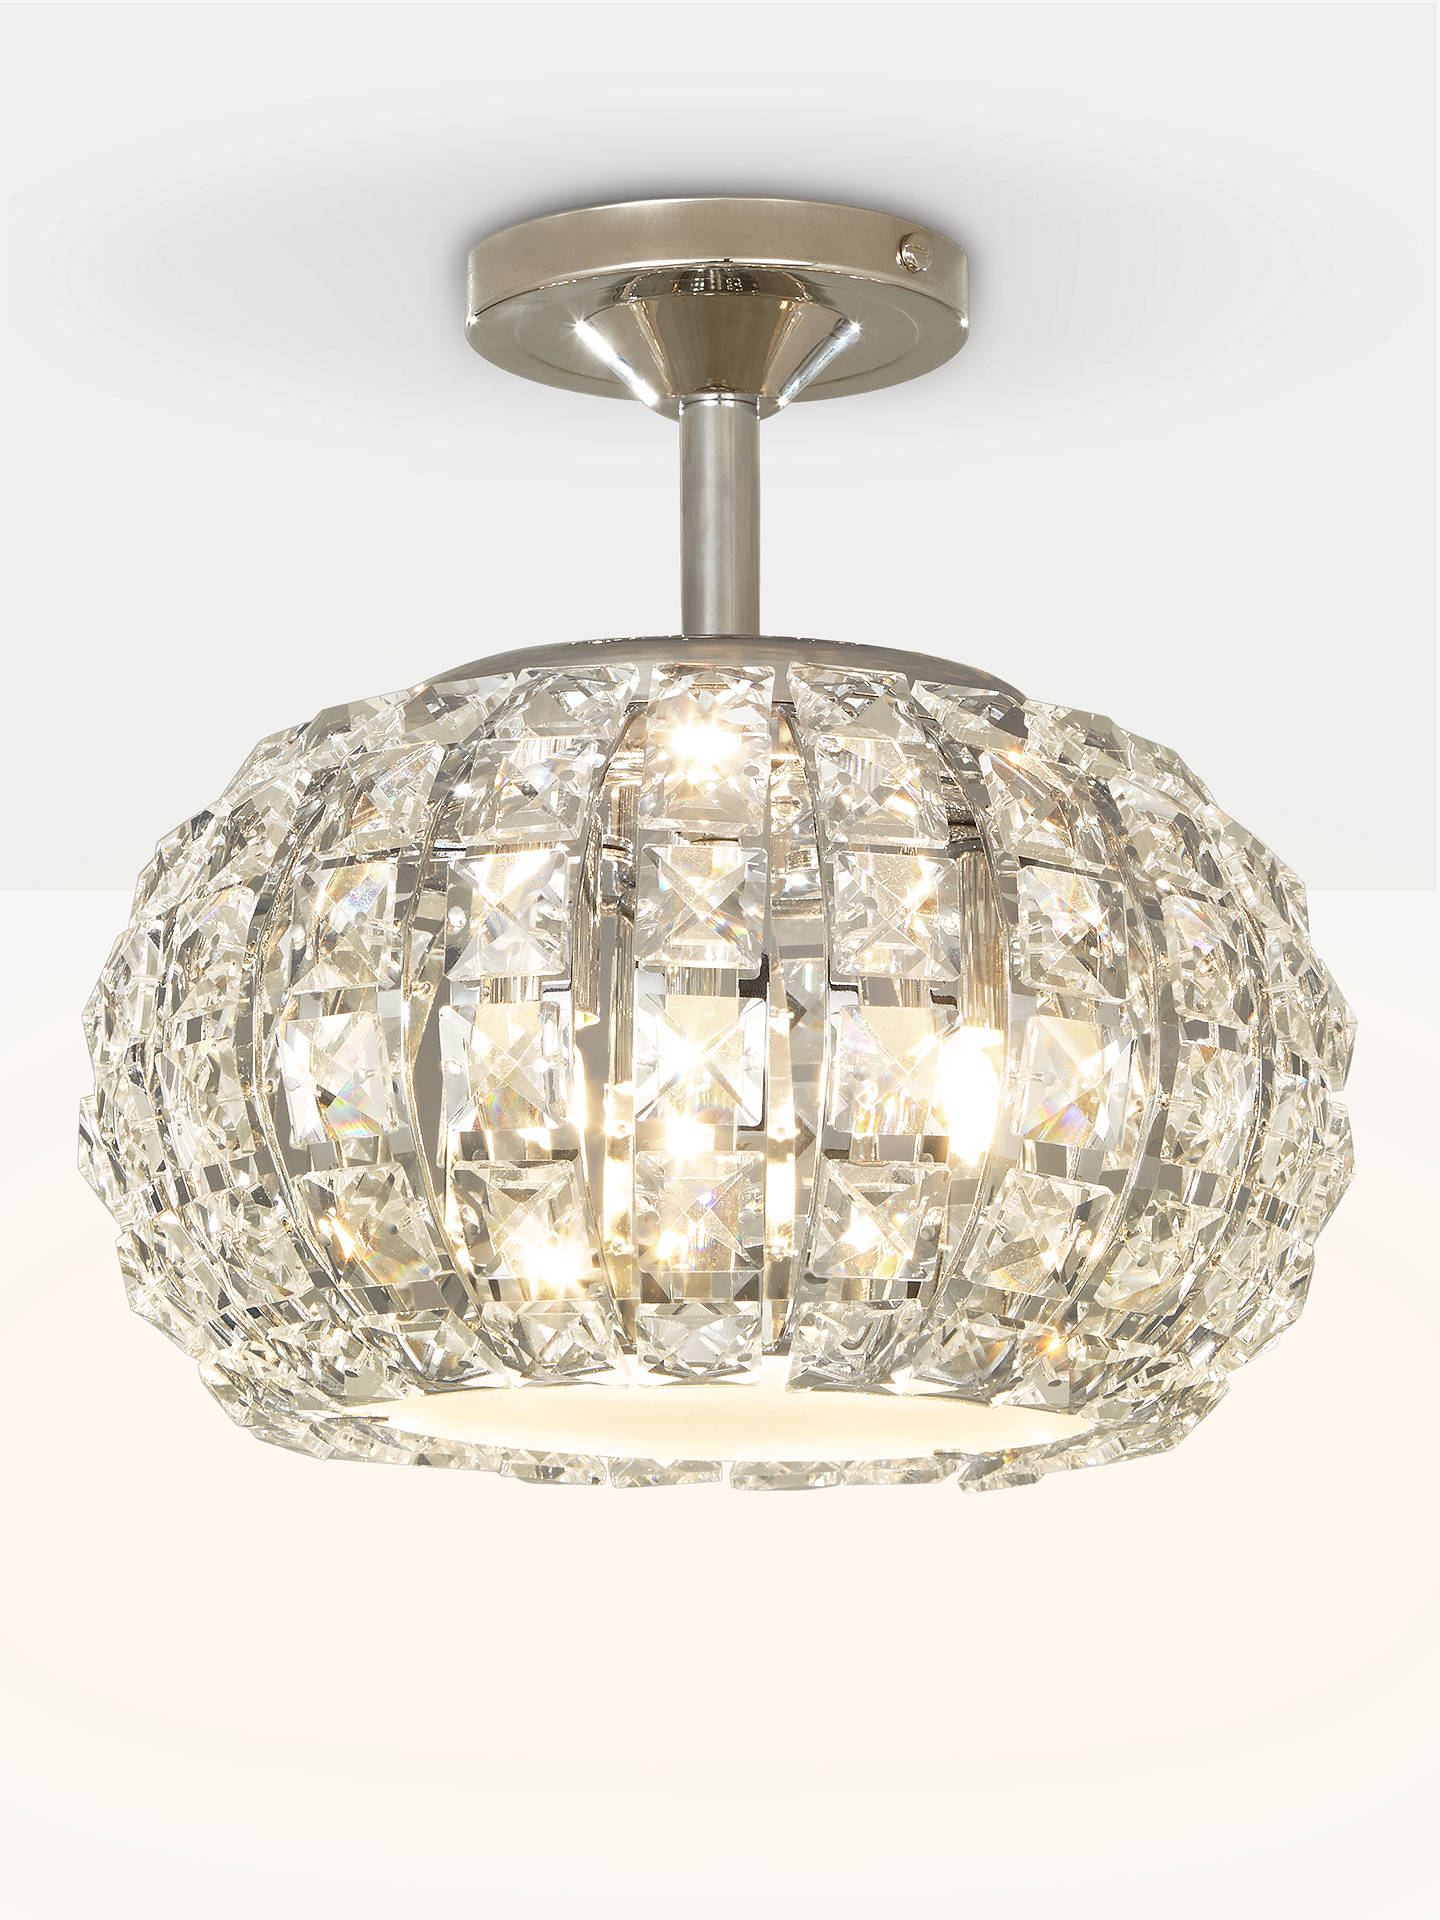 Buy John Lewis & Partners Venus Ceiling Light, Crystal and Chrome Online at johnlewis.com